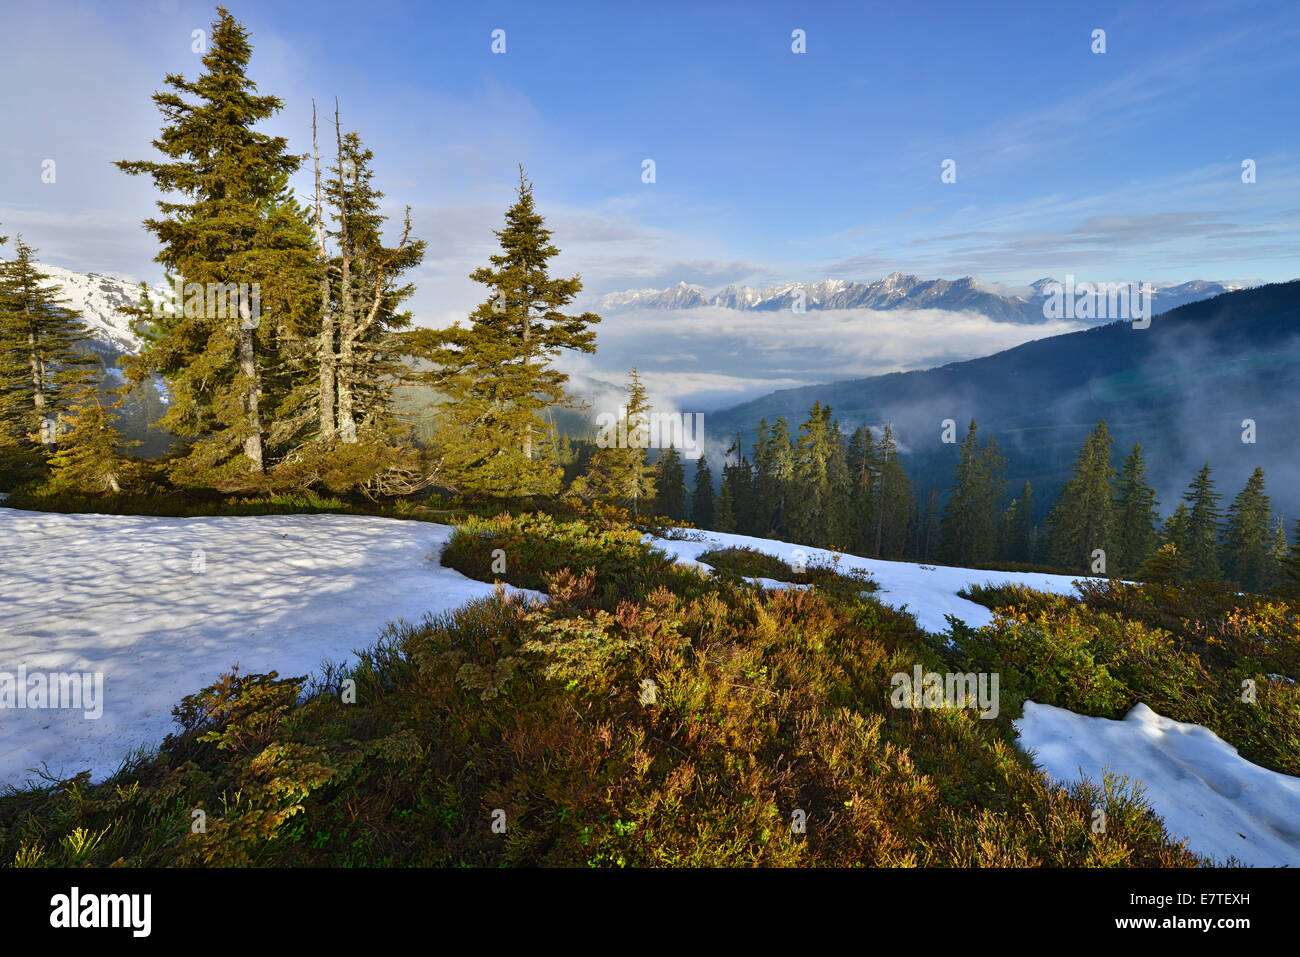 Mountain landscape with snow, at the back the Inn Valley and at the far back the Karwendel Range, from Mt Kleiner - Stock Image